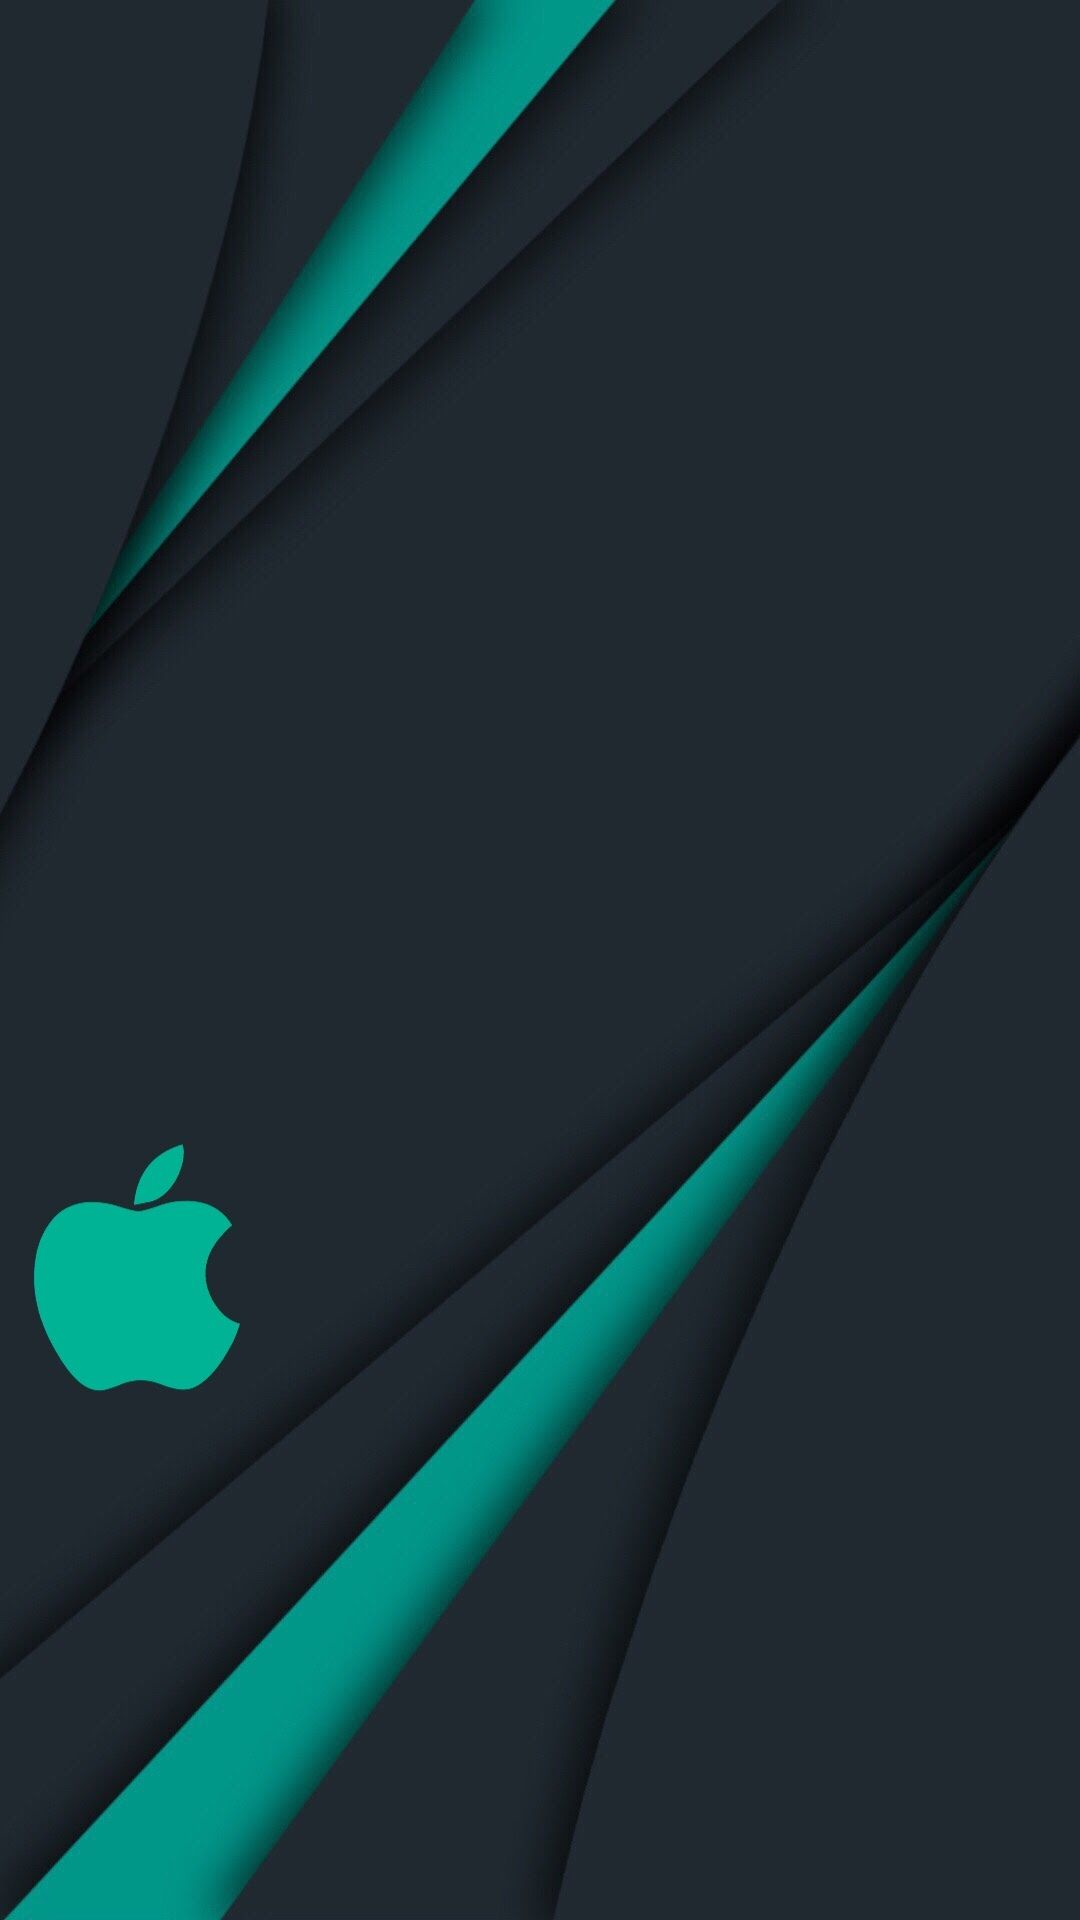 Green Shield Apple Papel De Parede Wallpaper Papel De Parede Do